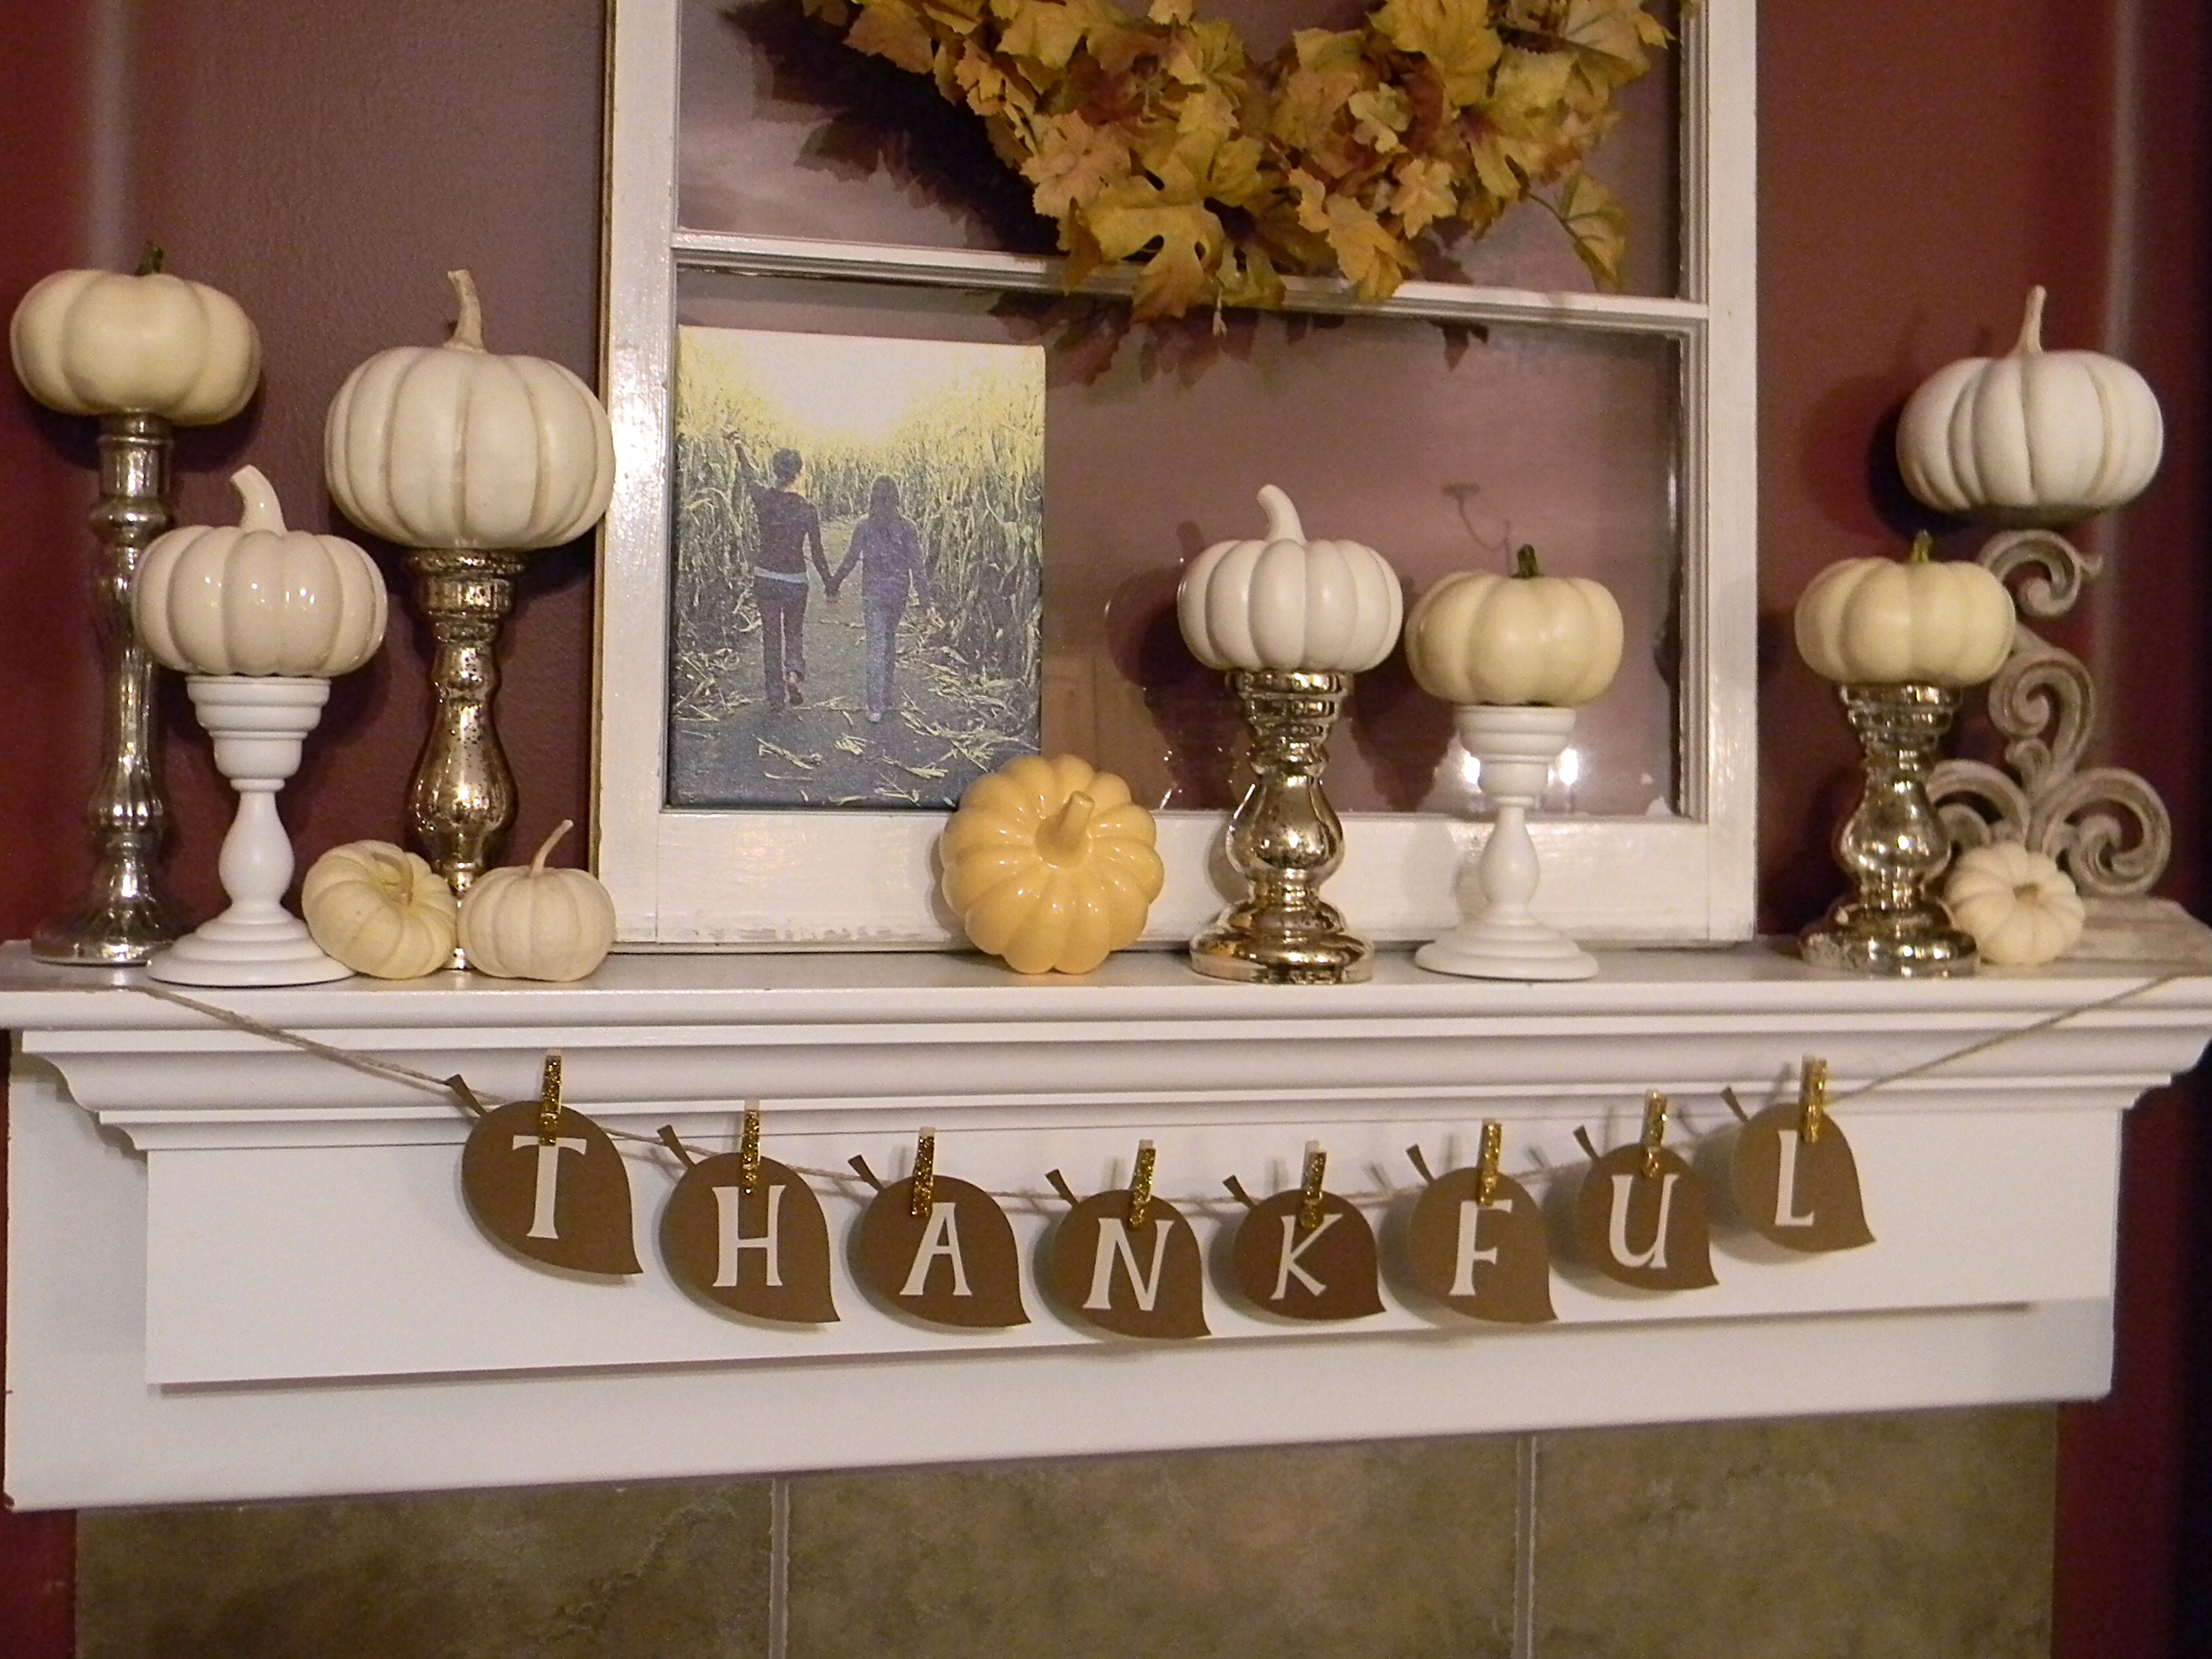 Thankful Banner For Thankgiving Decoration (Image 5 of 10)